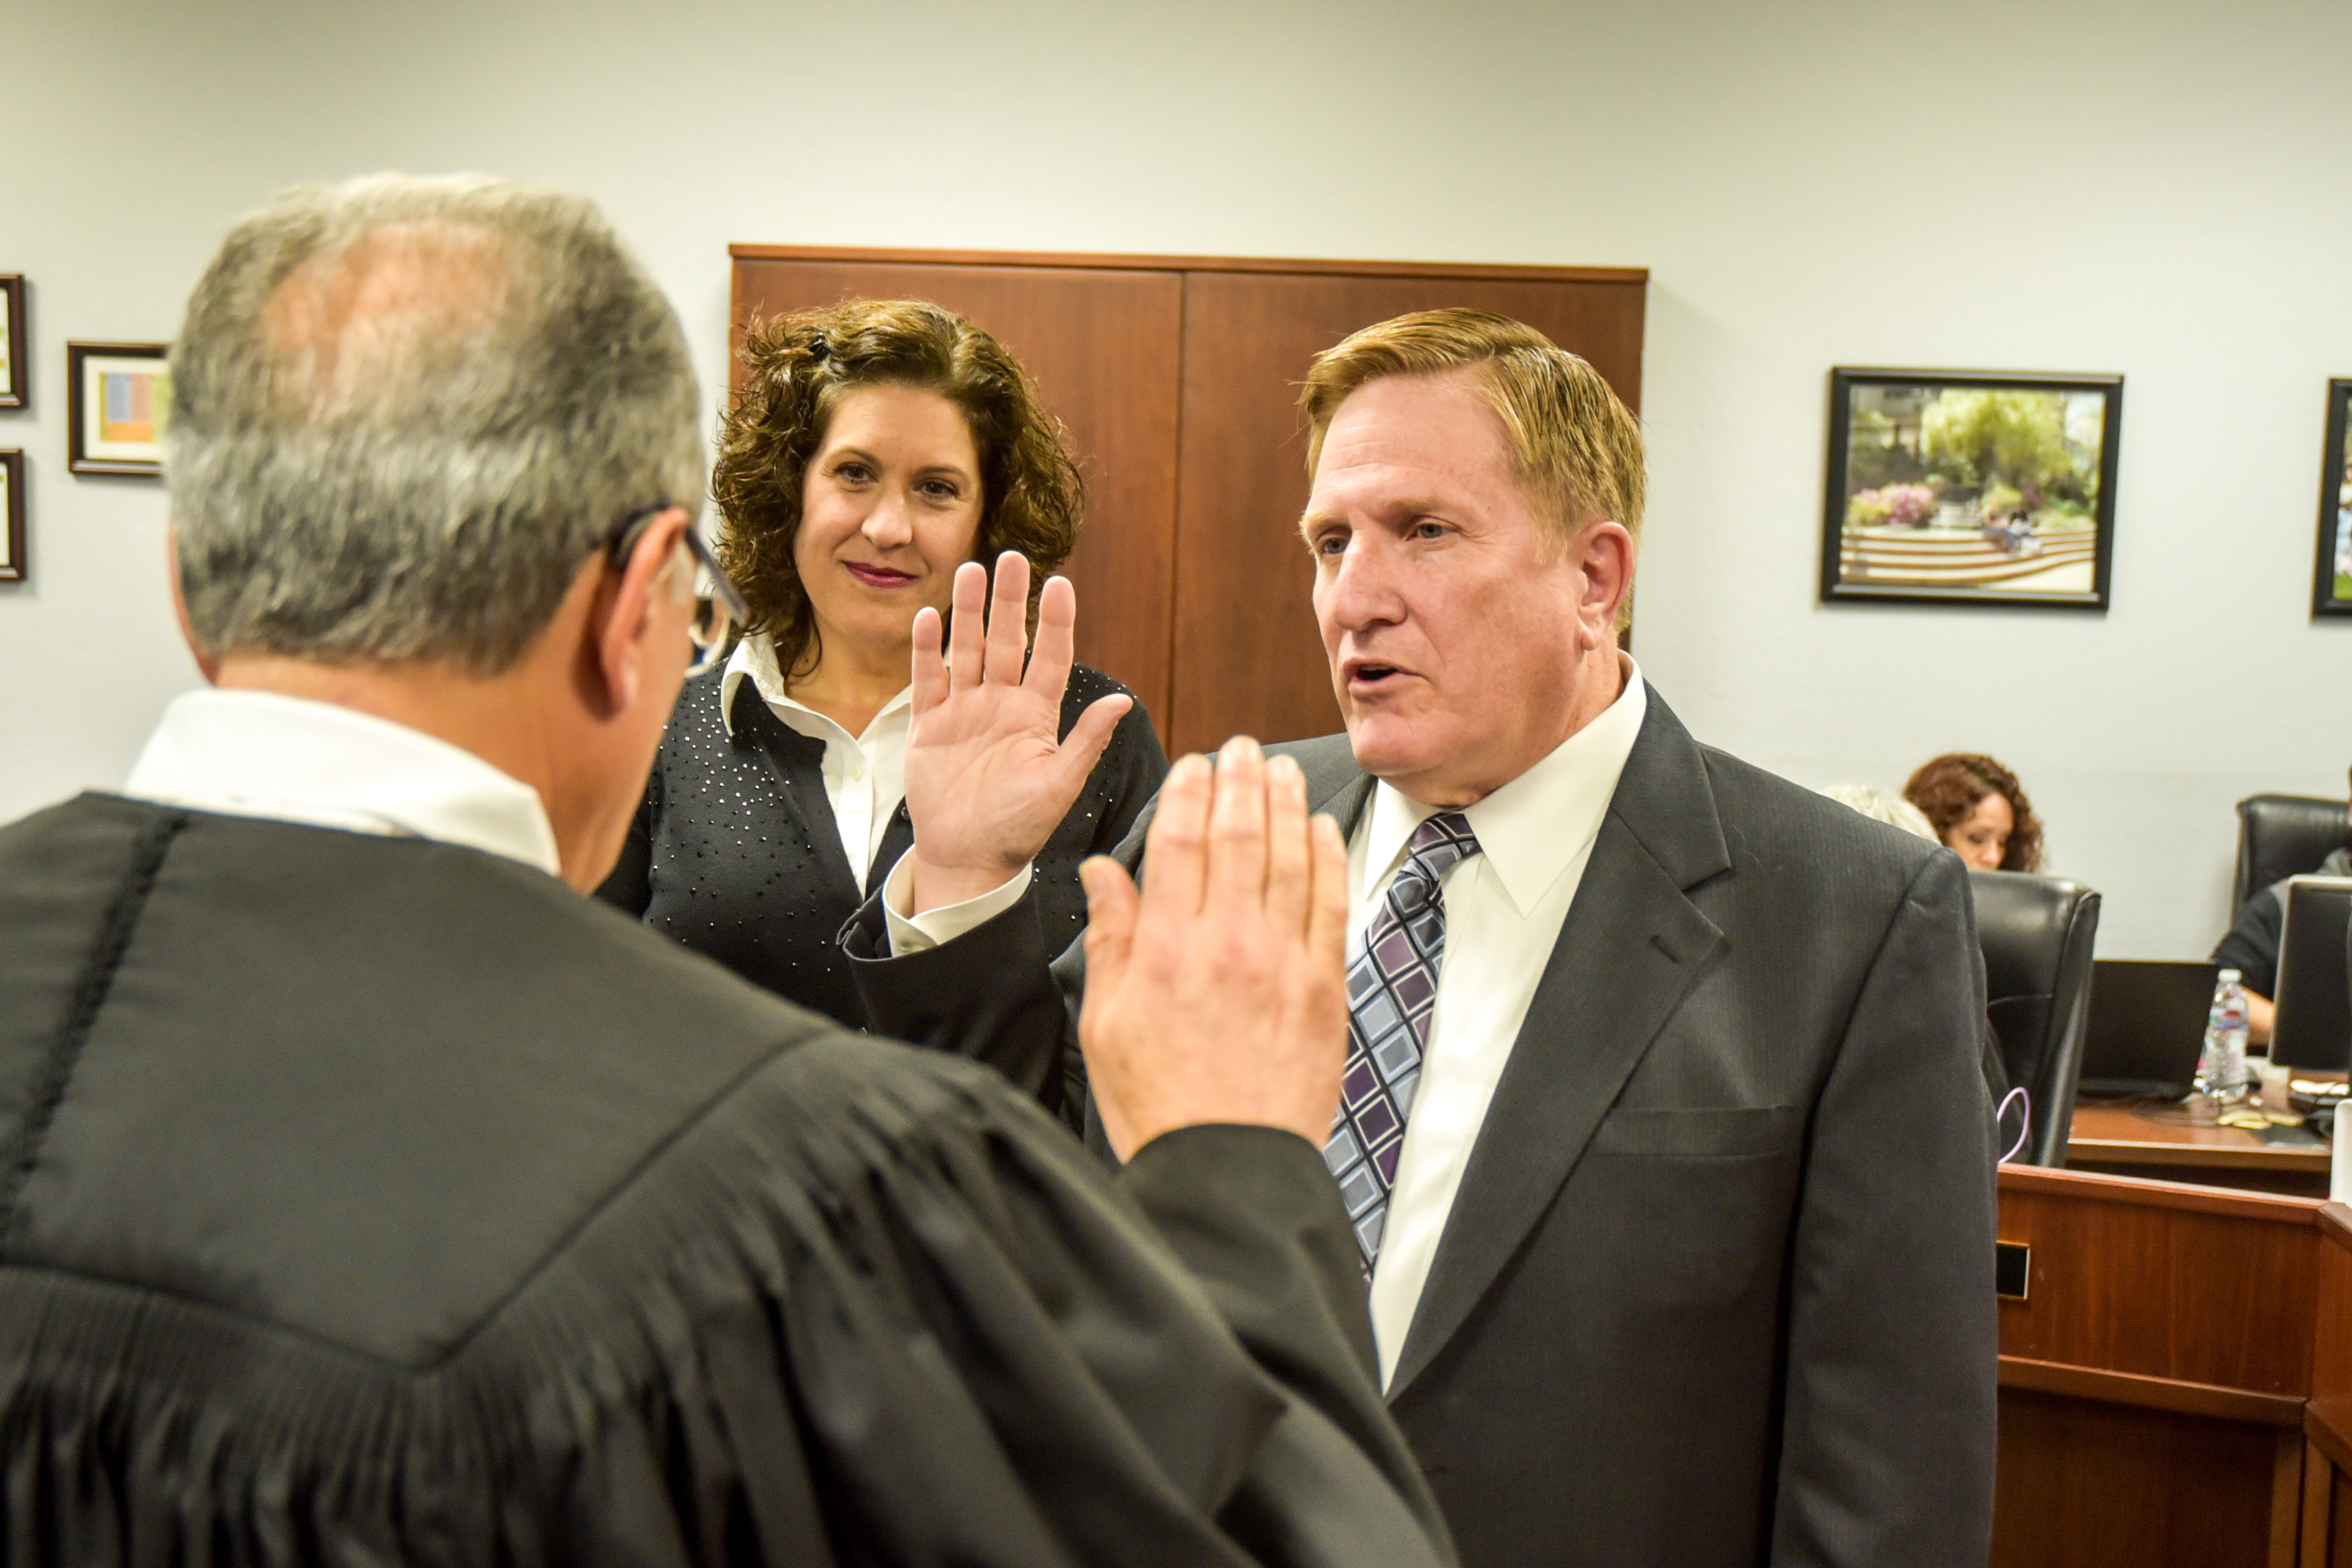 New San Joaquin Delta College Trustee Charles Jennings is sworn in while his wife, Heather, watches.